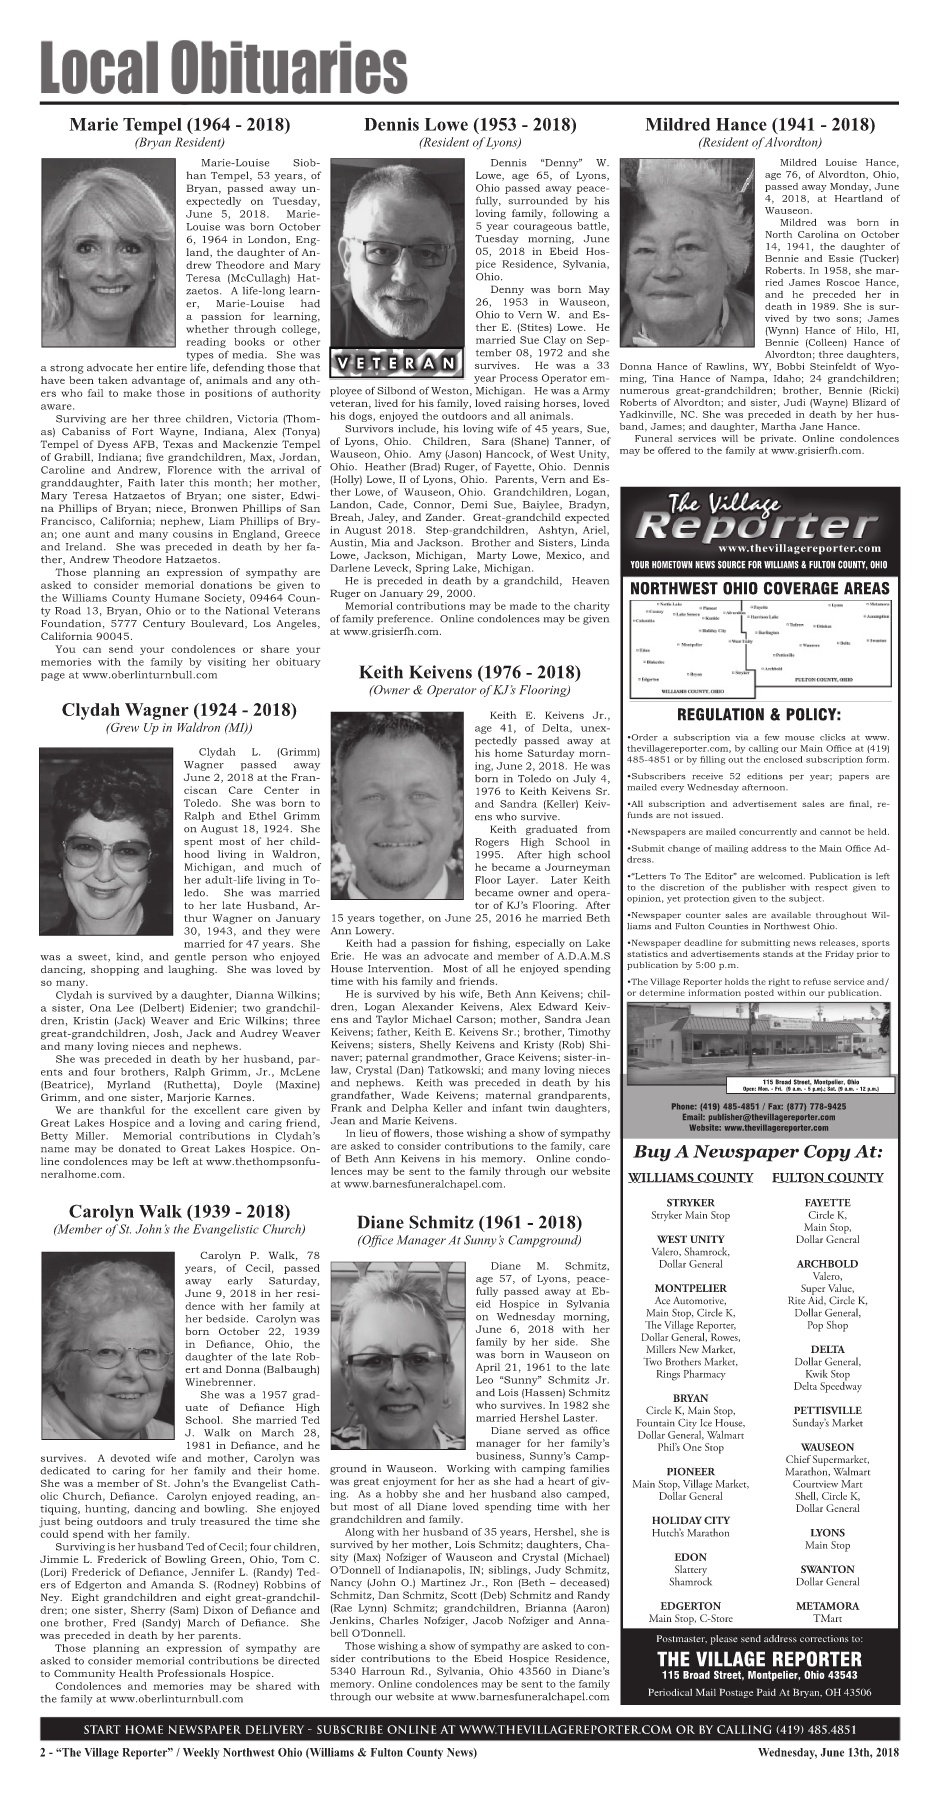 The Village Reporter - June 13th, 2018 Pages 1 - 36 - Text Version